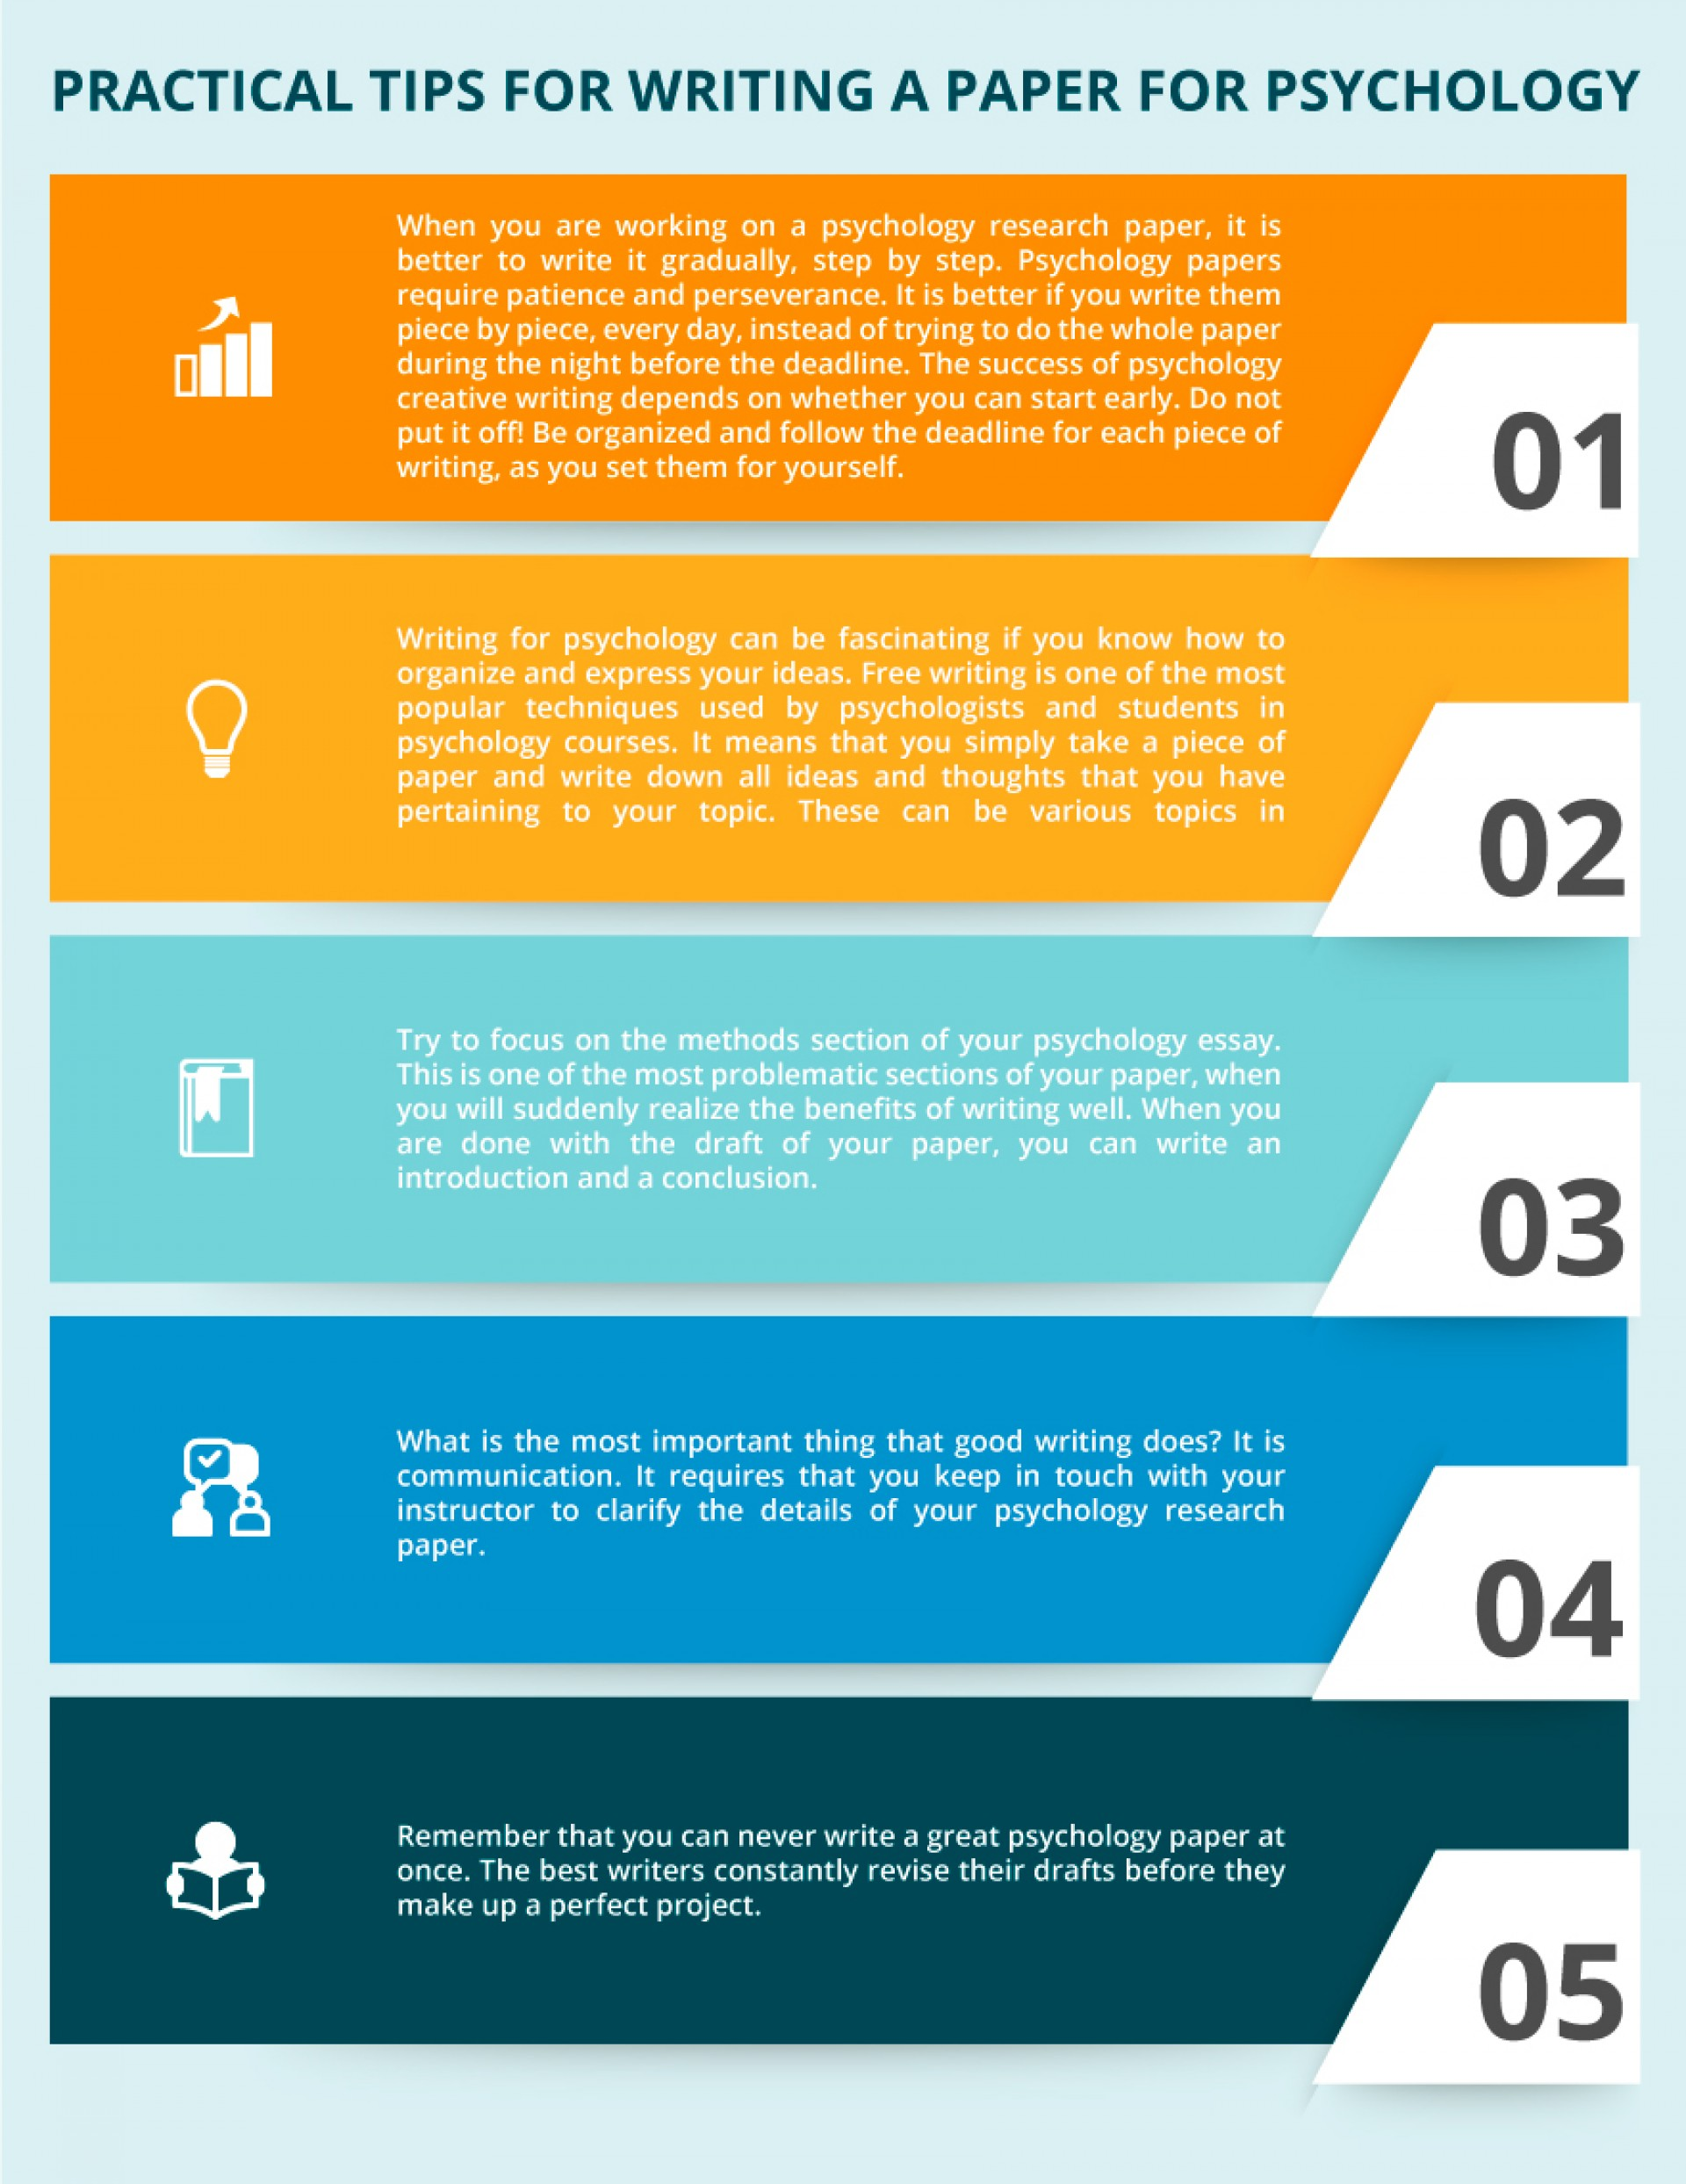 010 Research Paper Tips For Papers Infographic Practical Writing Psychology  Wondrous Good Effective1920